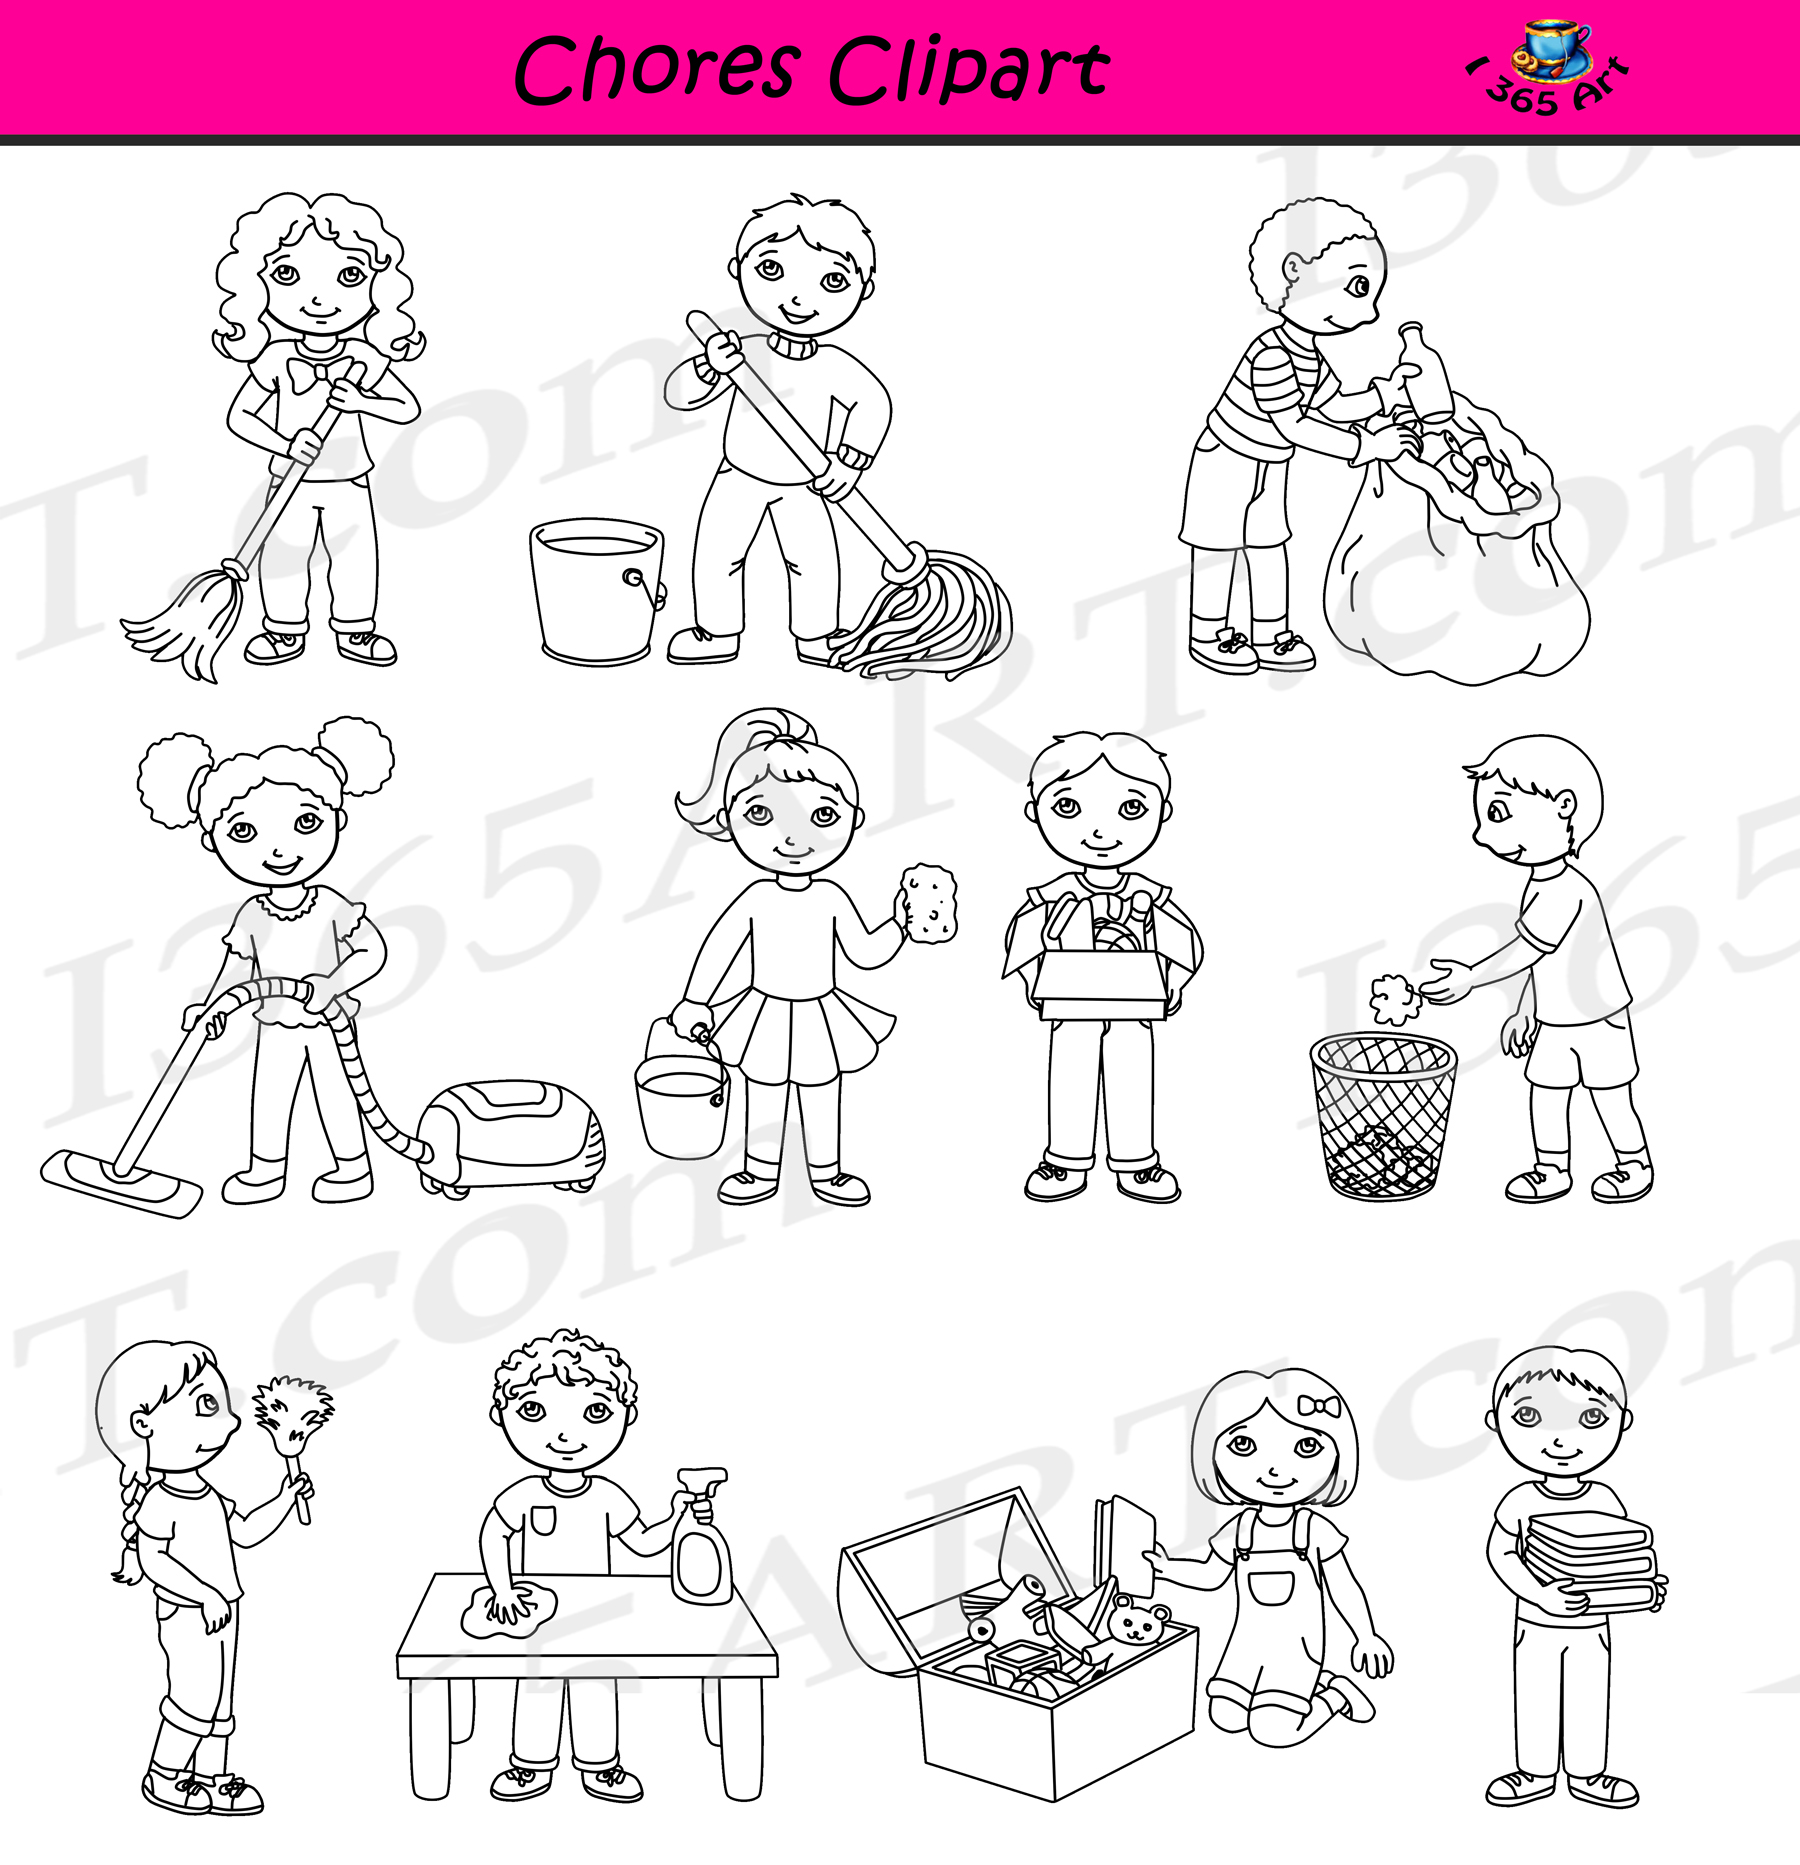 Cleaning commercial graphics. Chores clipart classroom